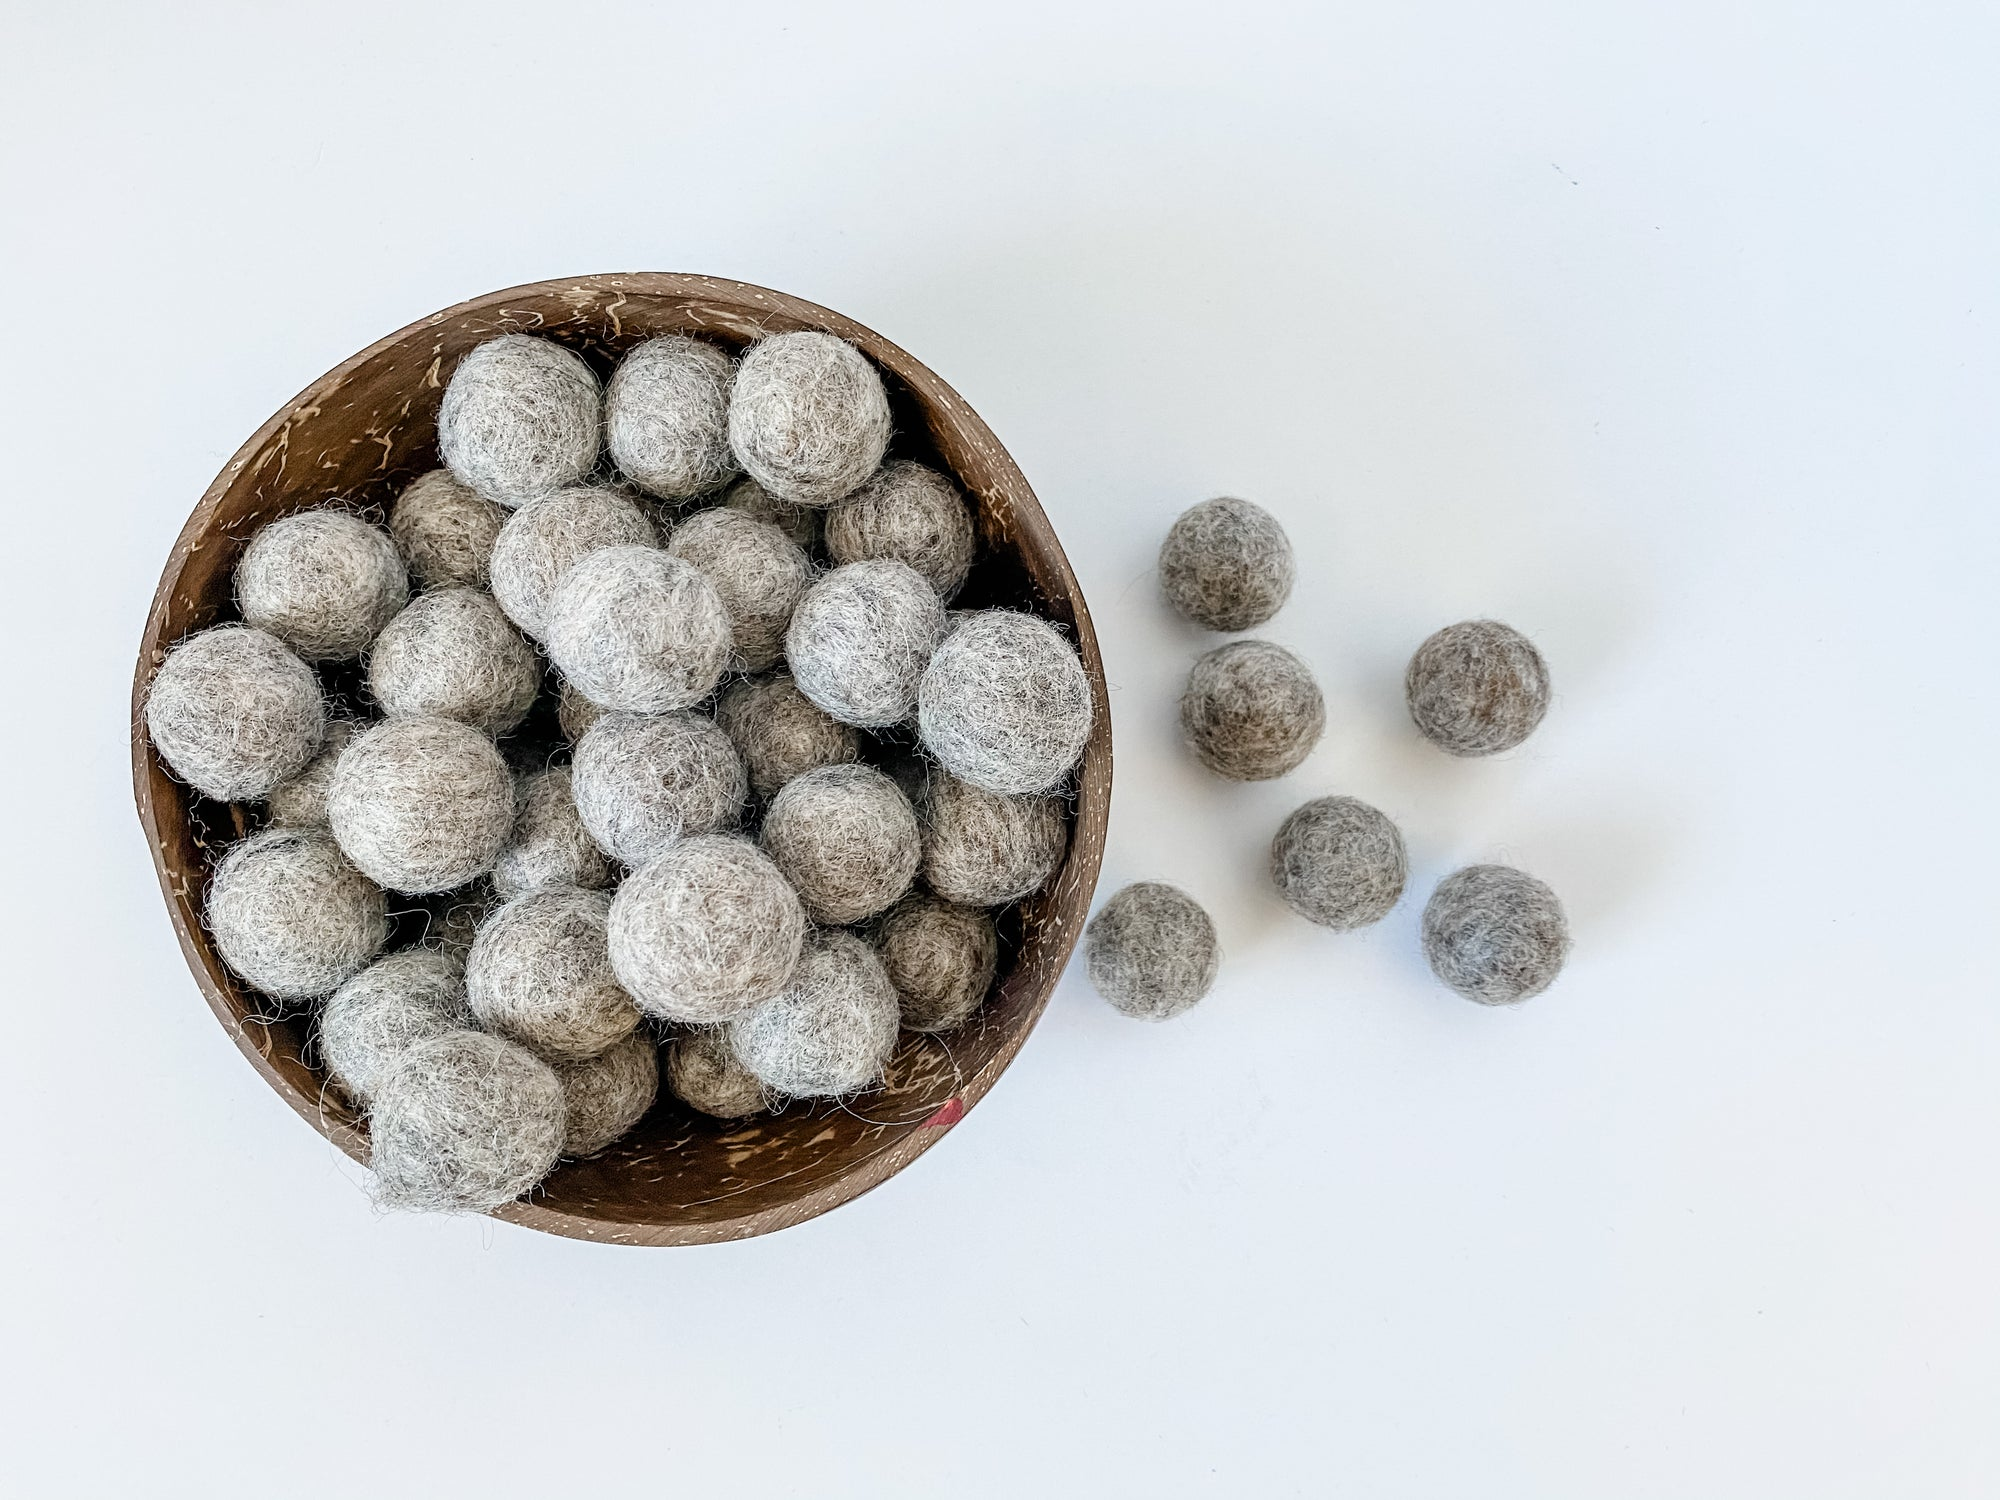 Fat and chunky gray wool balls for sensory play tray ideas and for use as math counters.